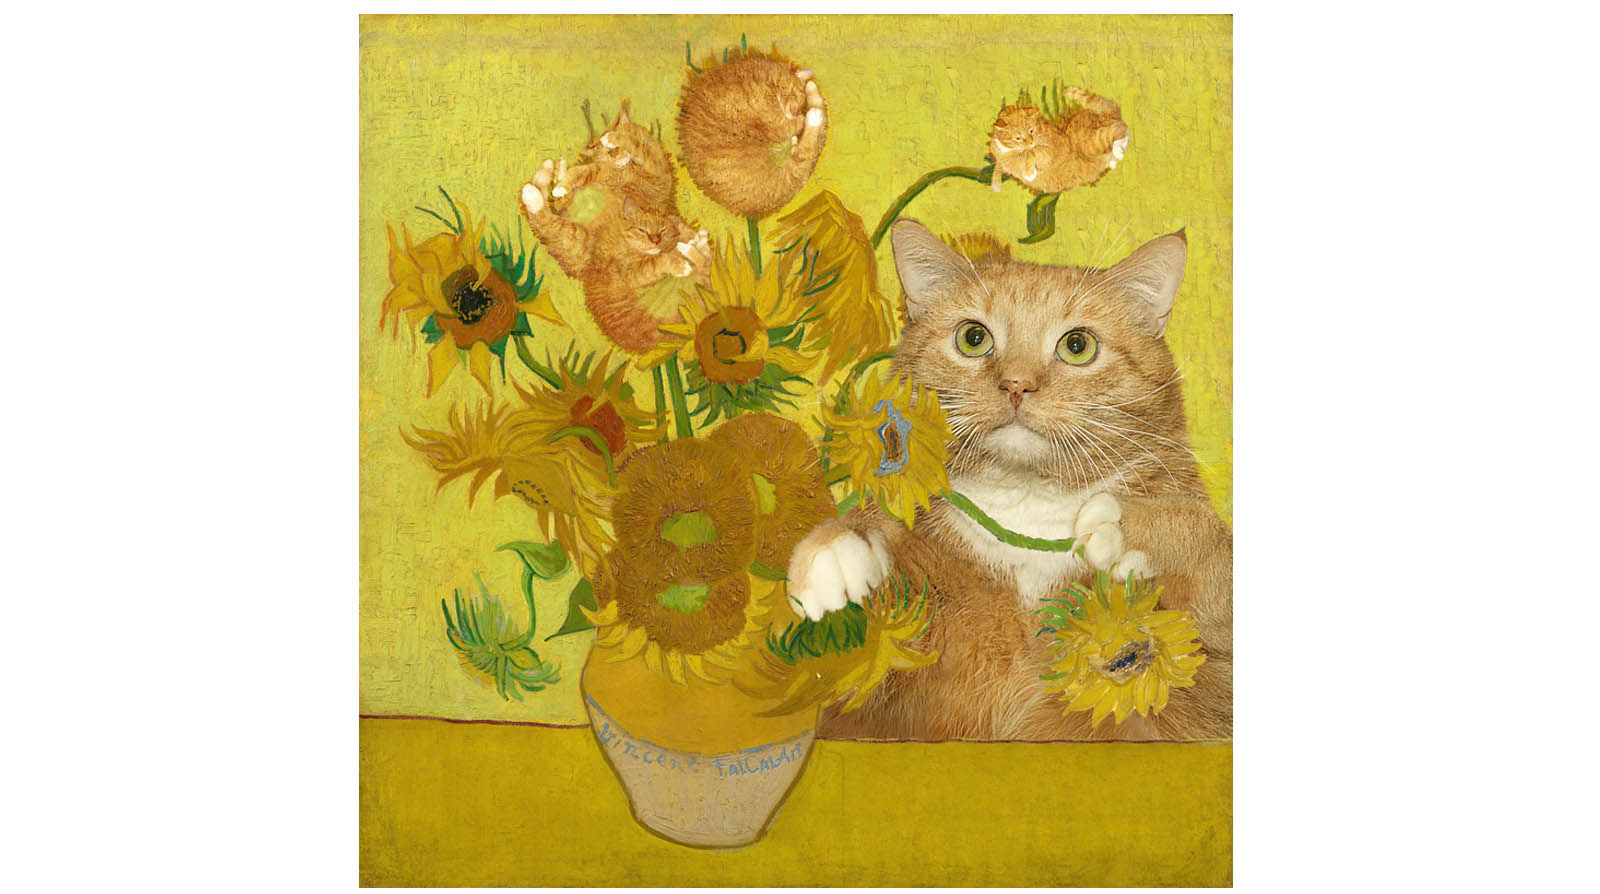 Vincent van Gogh. Sunflowers are ginger kittens